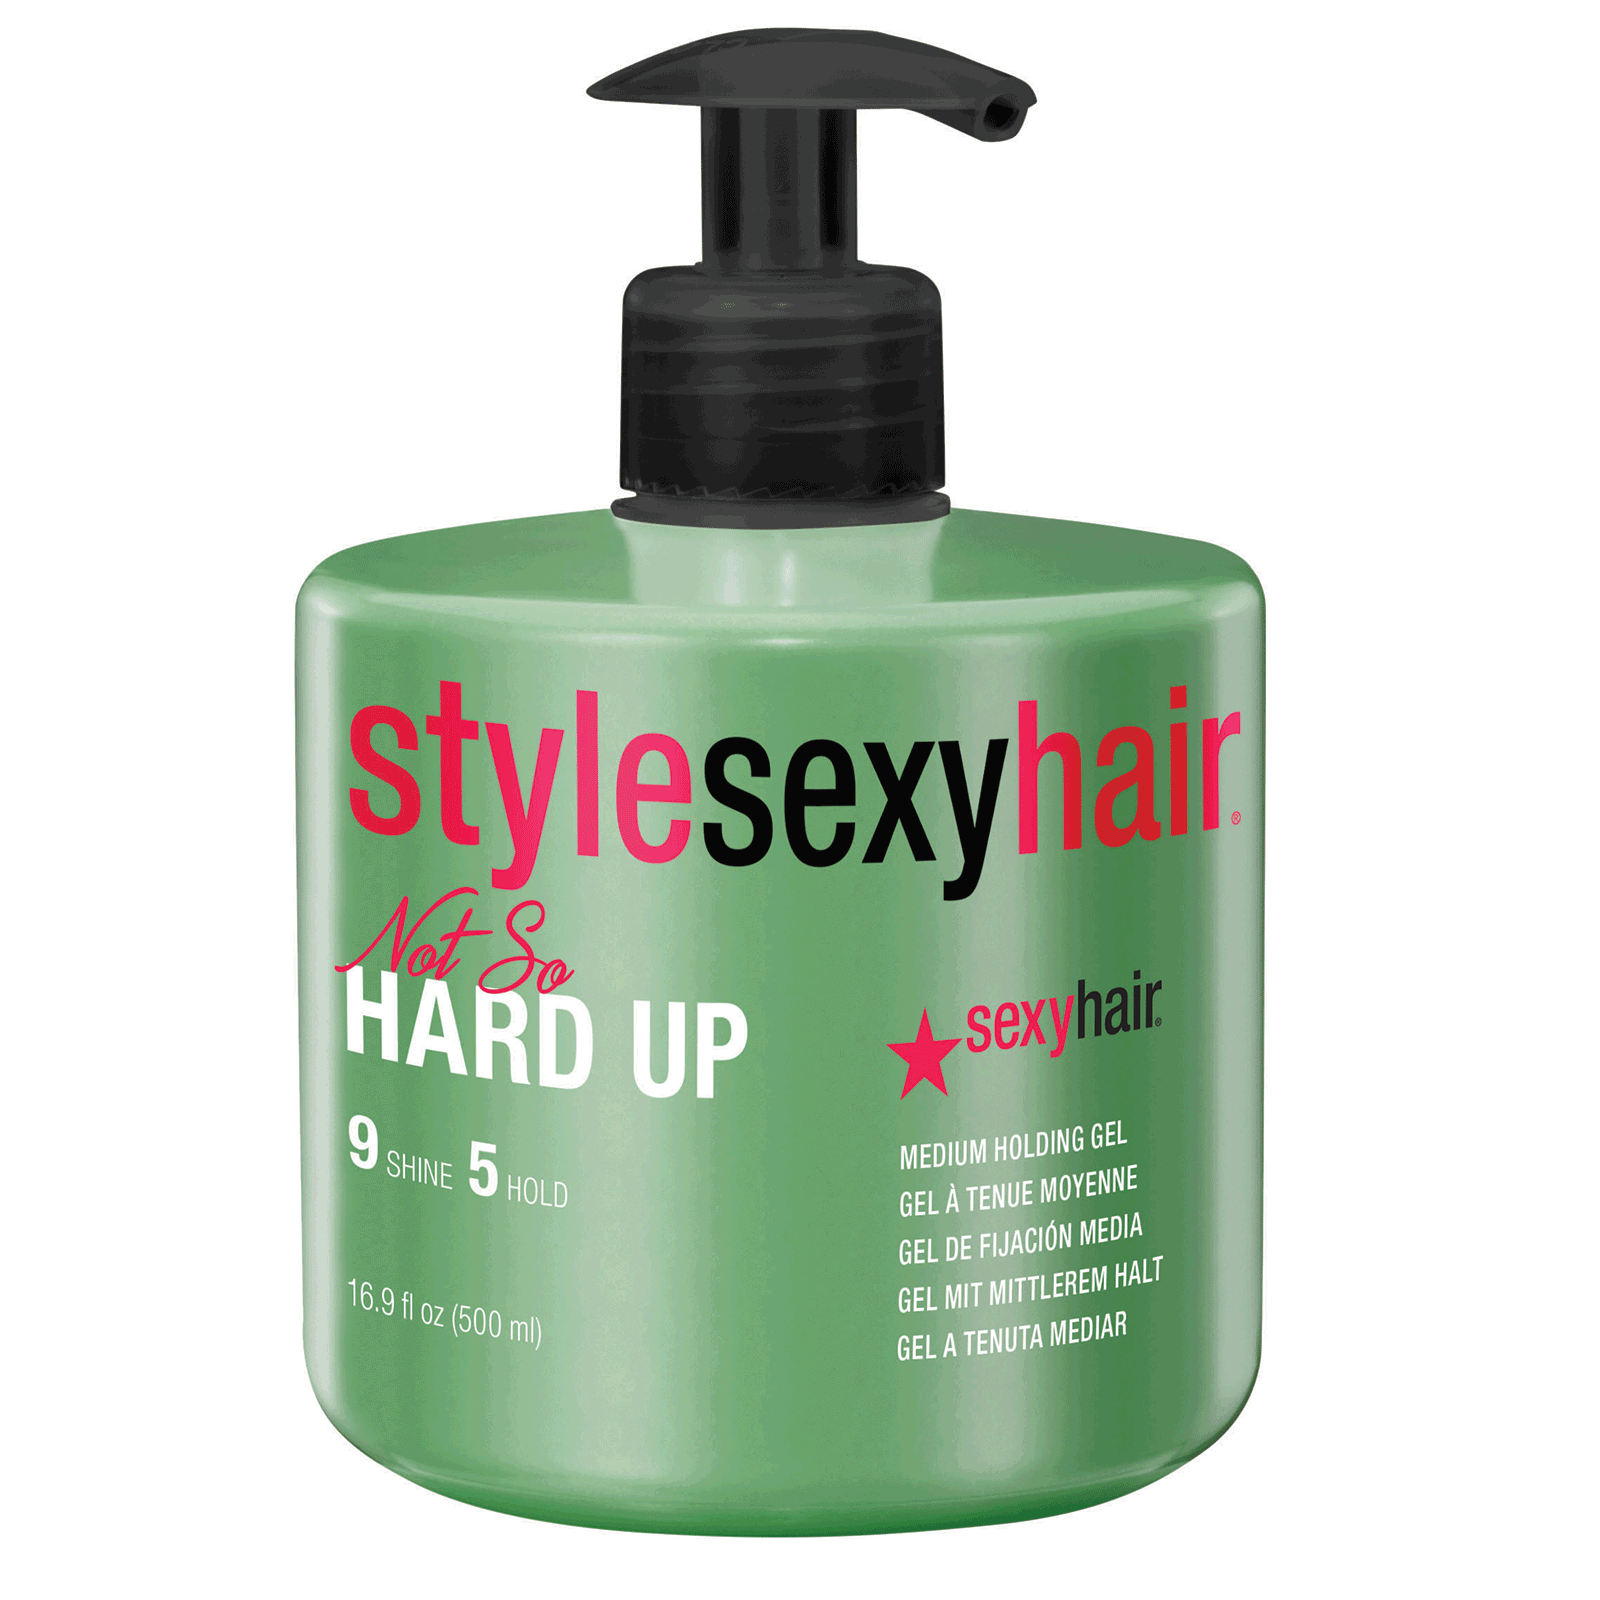 Style Sexy Hair - Not So Hard Up